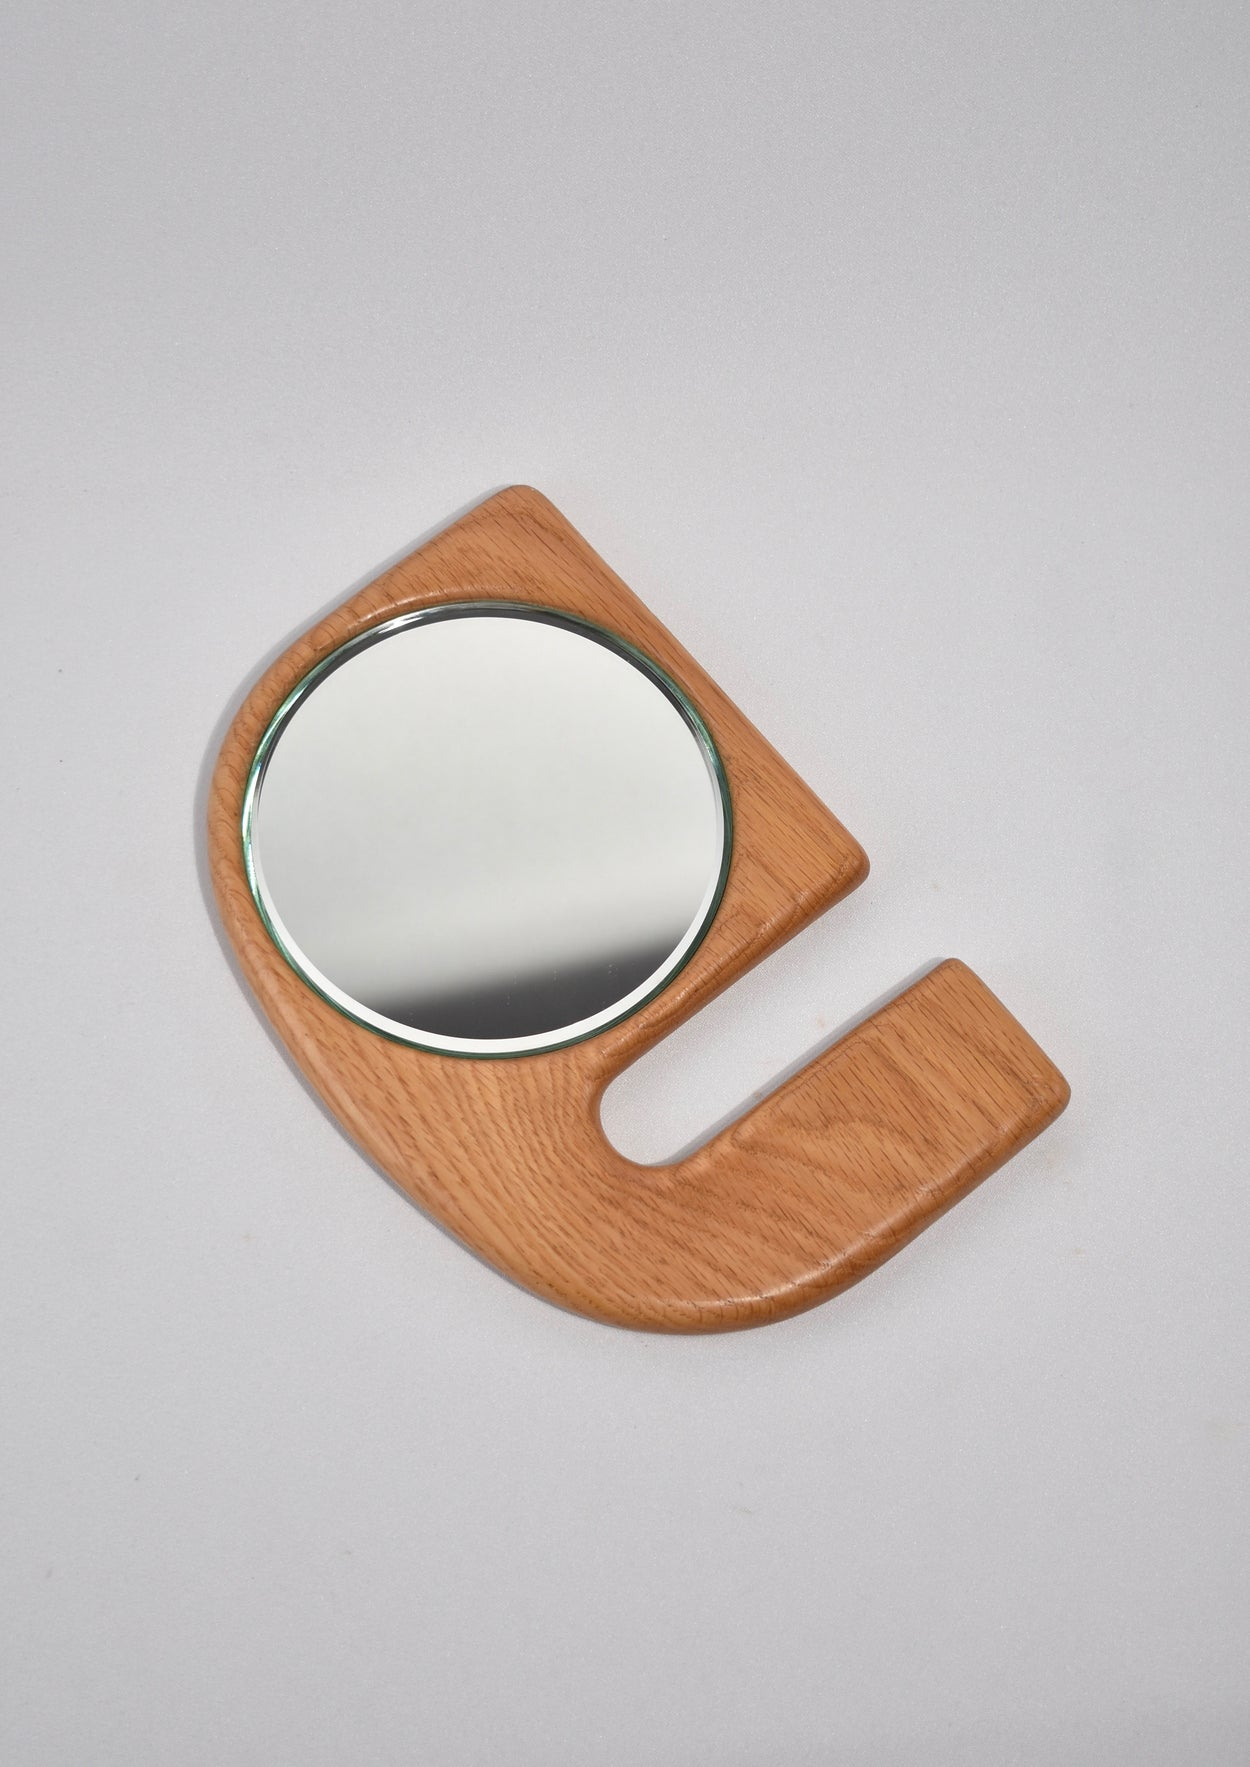 Sculptural Hand Mirror